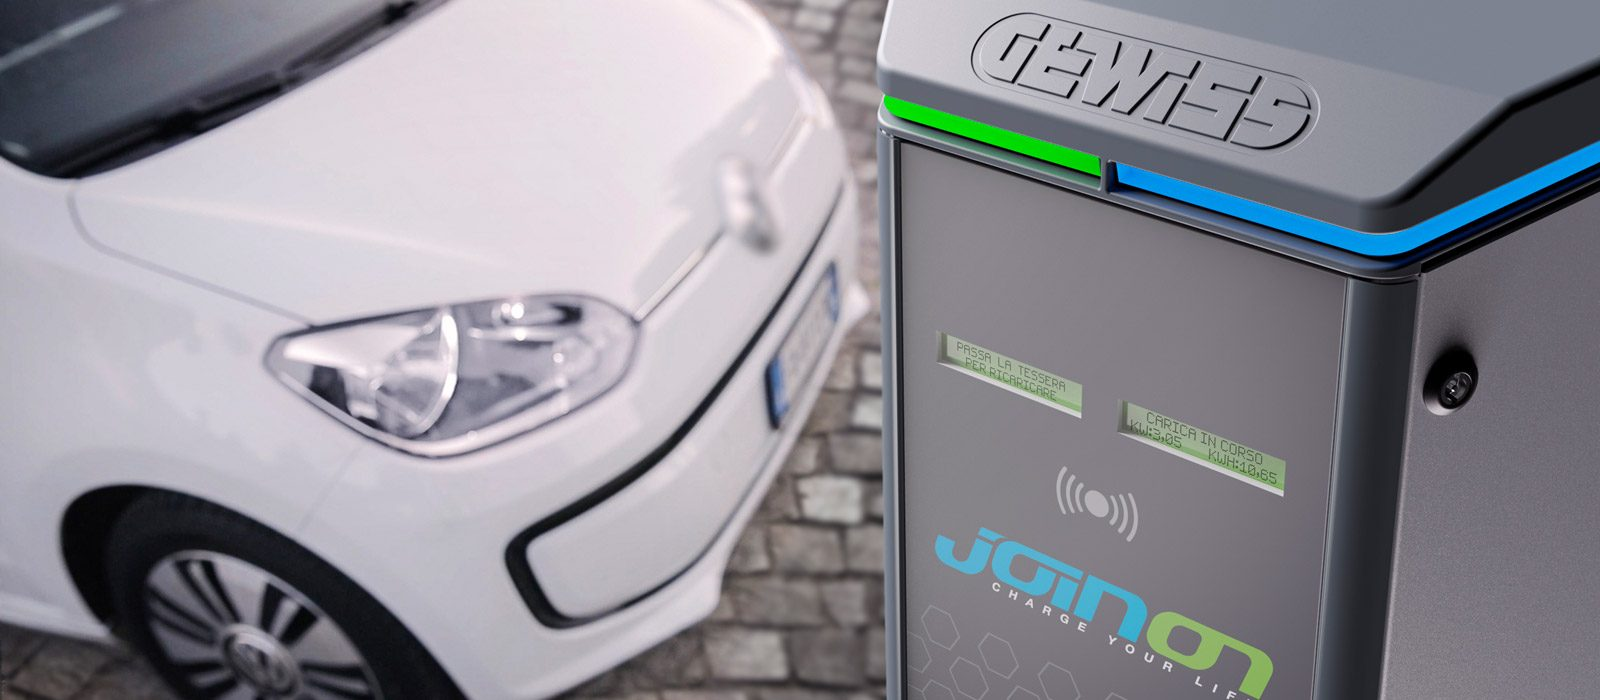 Explore the new JOINON electric vehicle charging solution